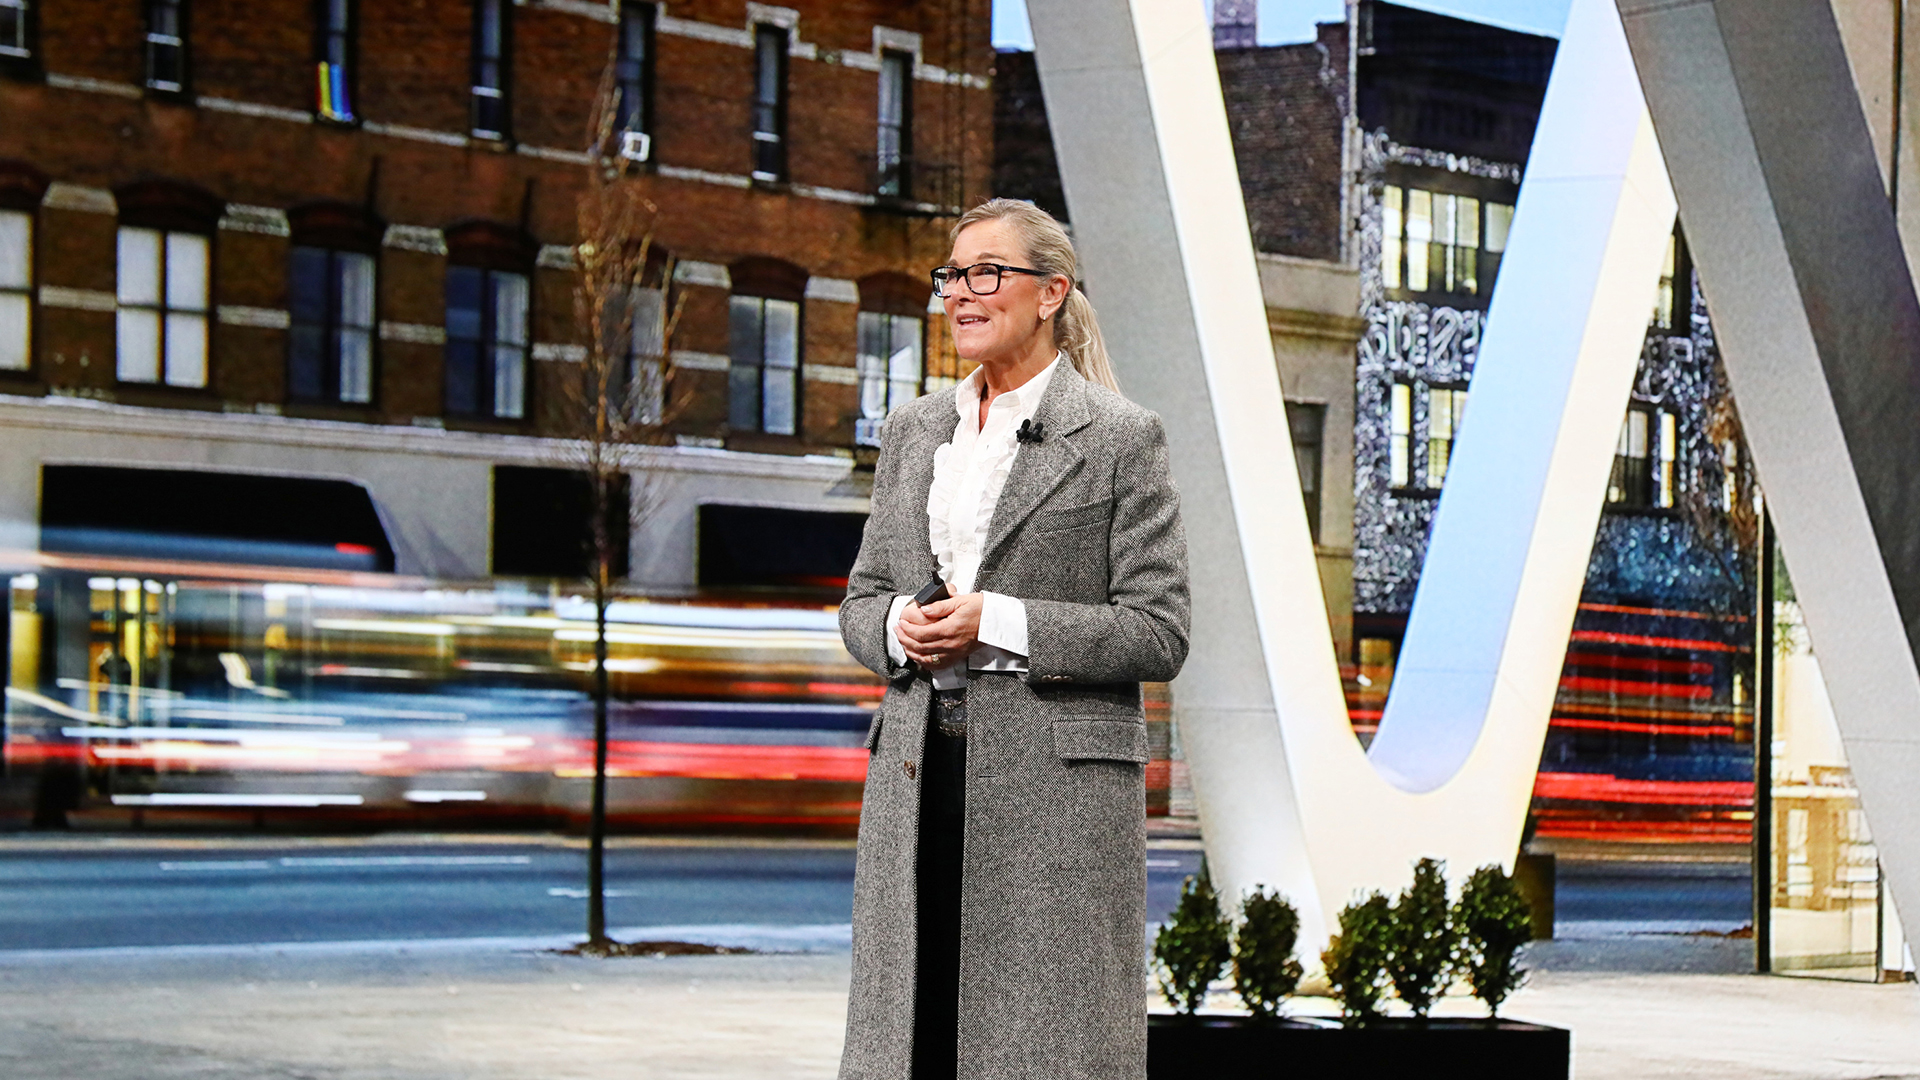 Angela Ahrendts joins Airbnb's board of directors after leaving Apple